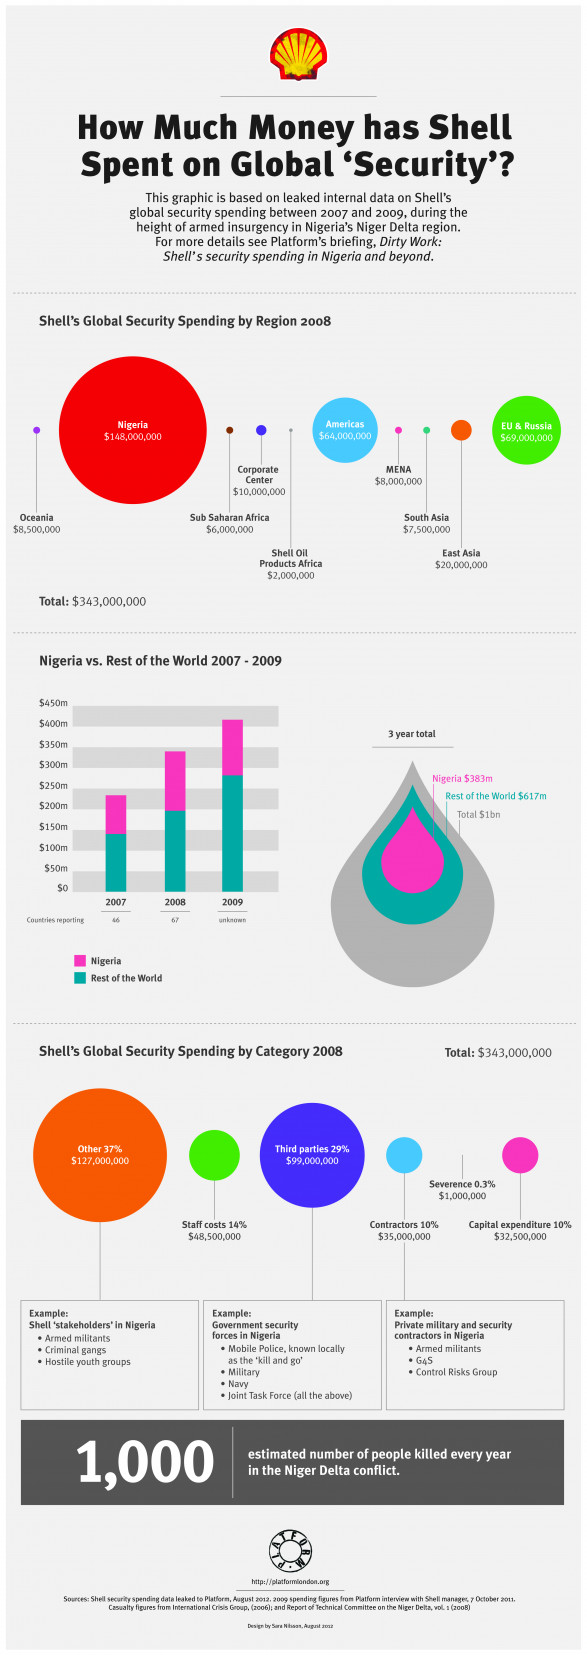 How Much Money has Shell Spent on Global